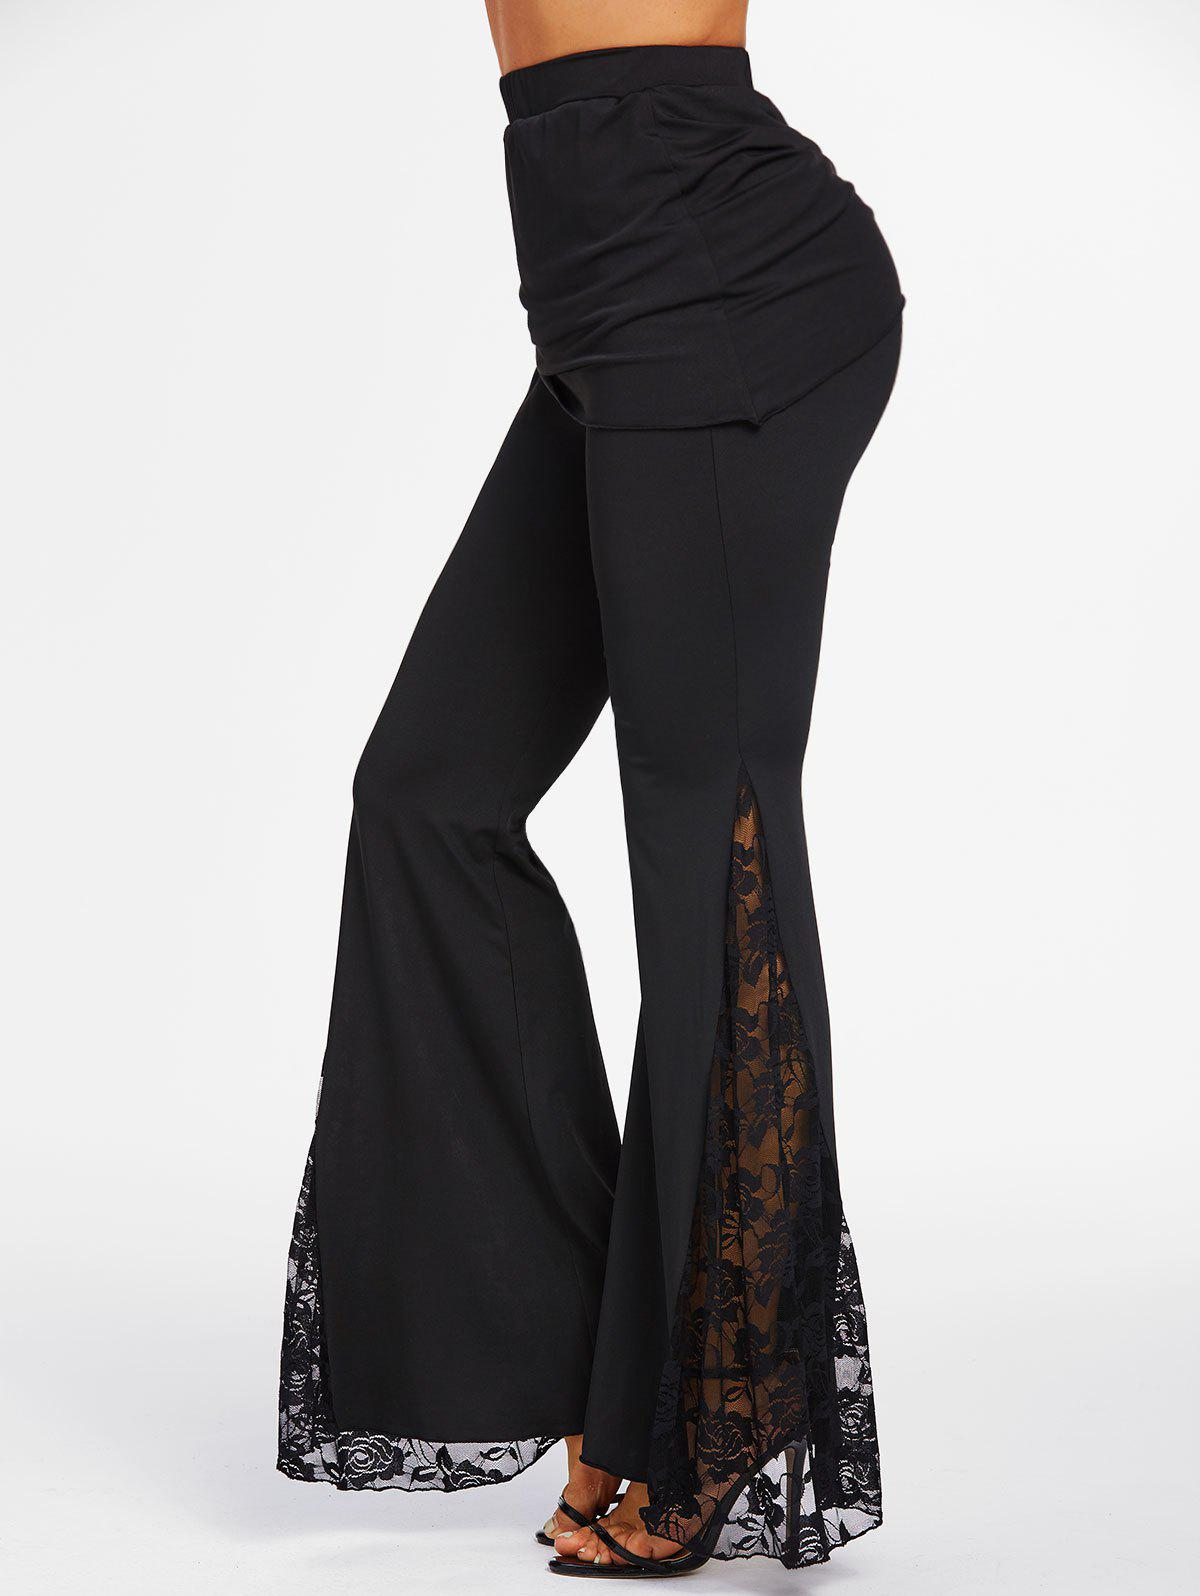 Fancy Flower Lace Insert Cinched Skirted Flare Pants